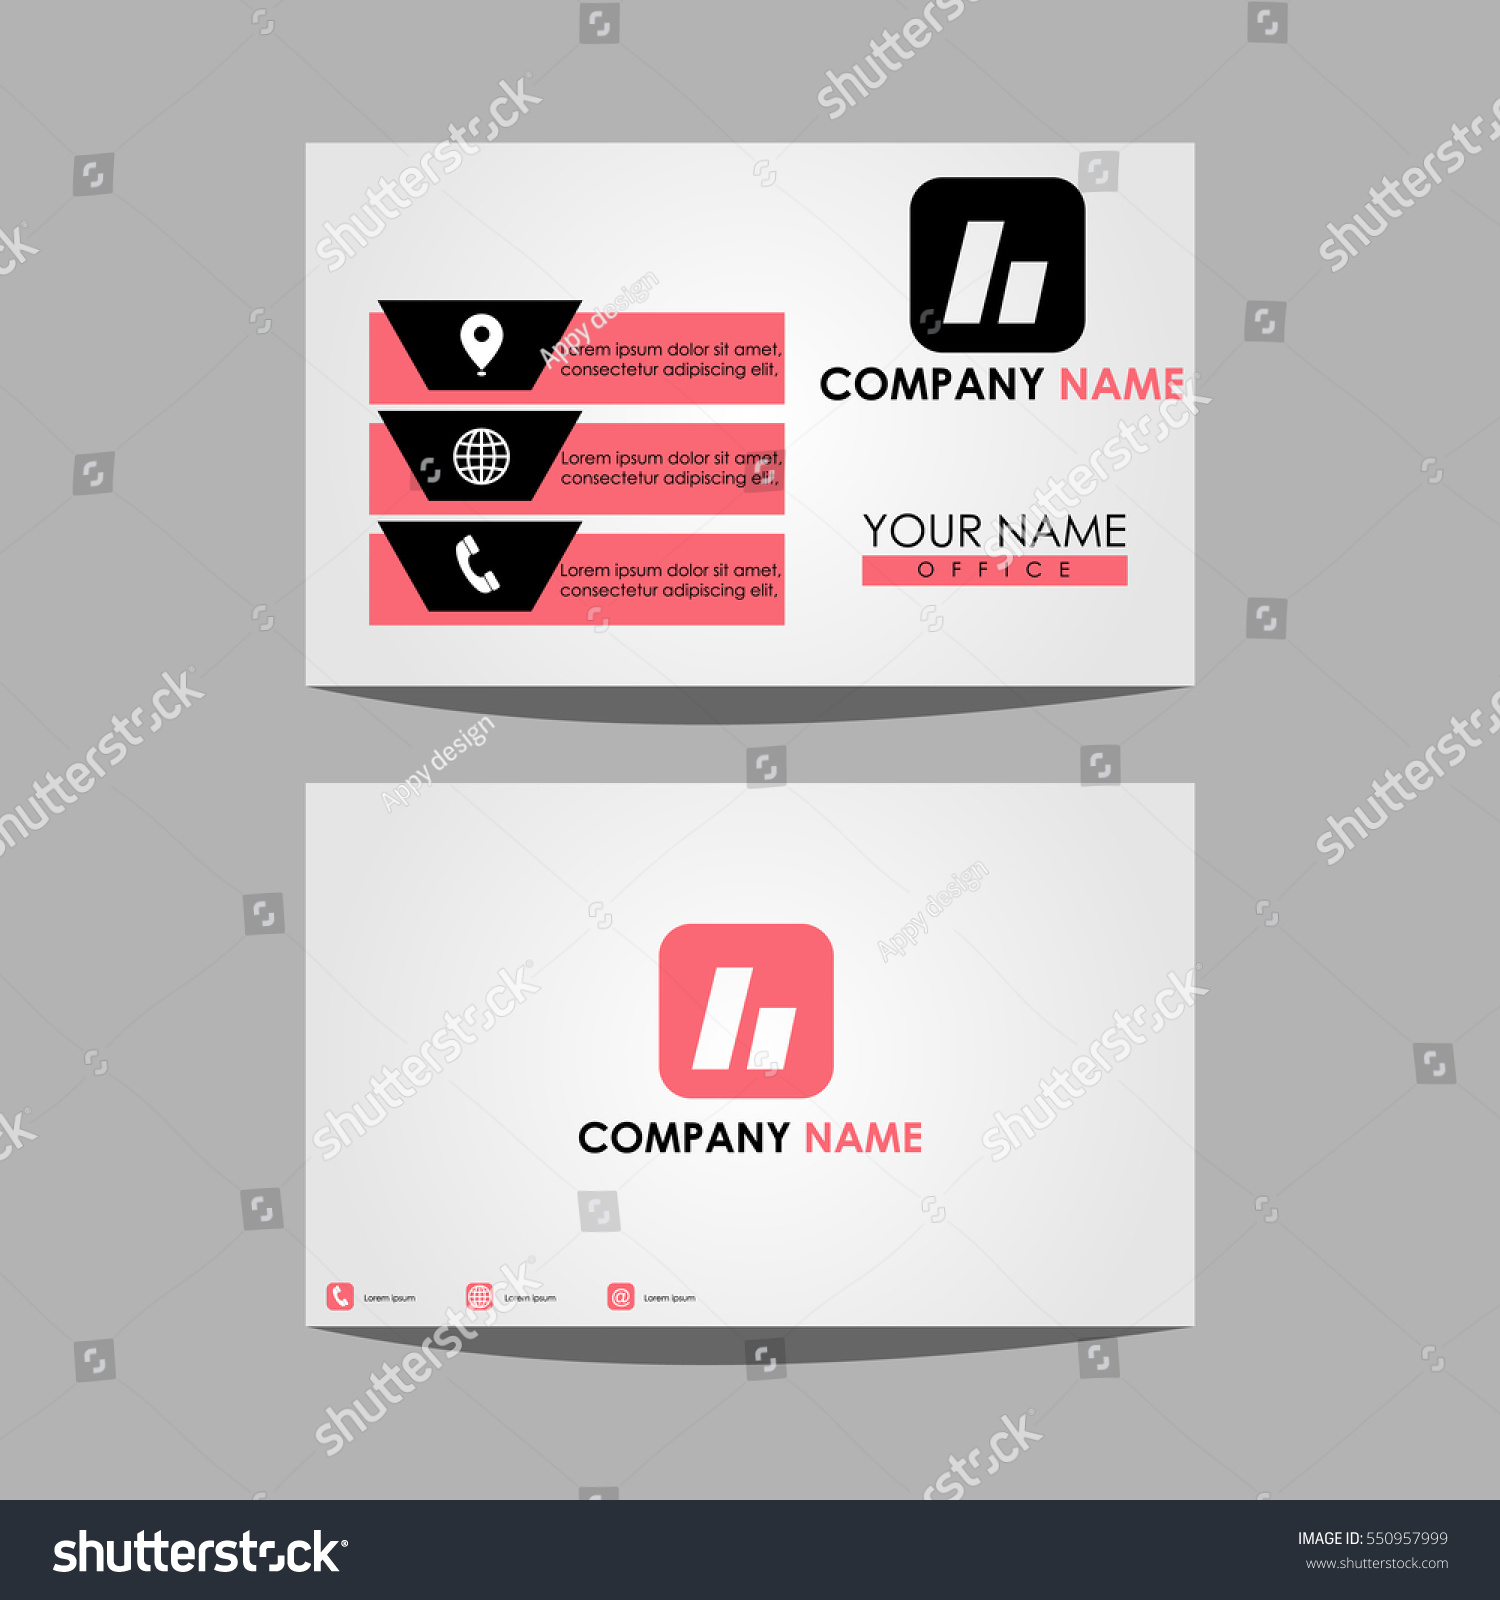 Layout Template Id Card Business Personal Stock Vector 550957999 ...